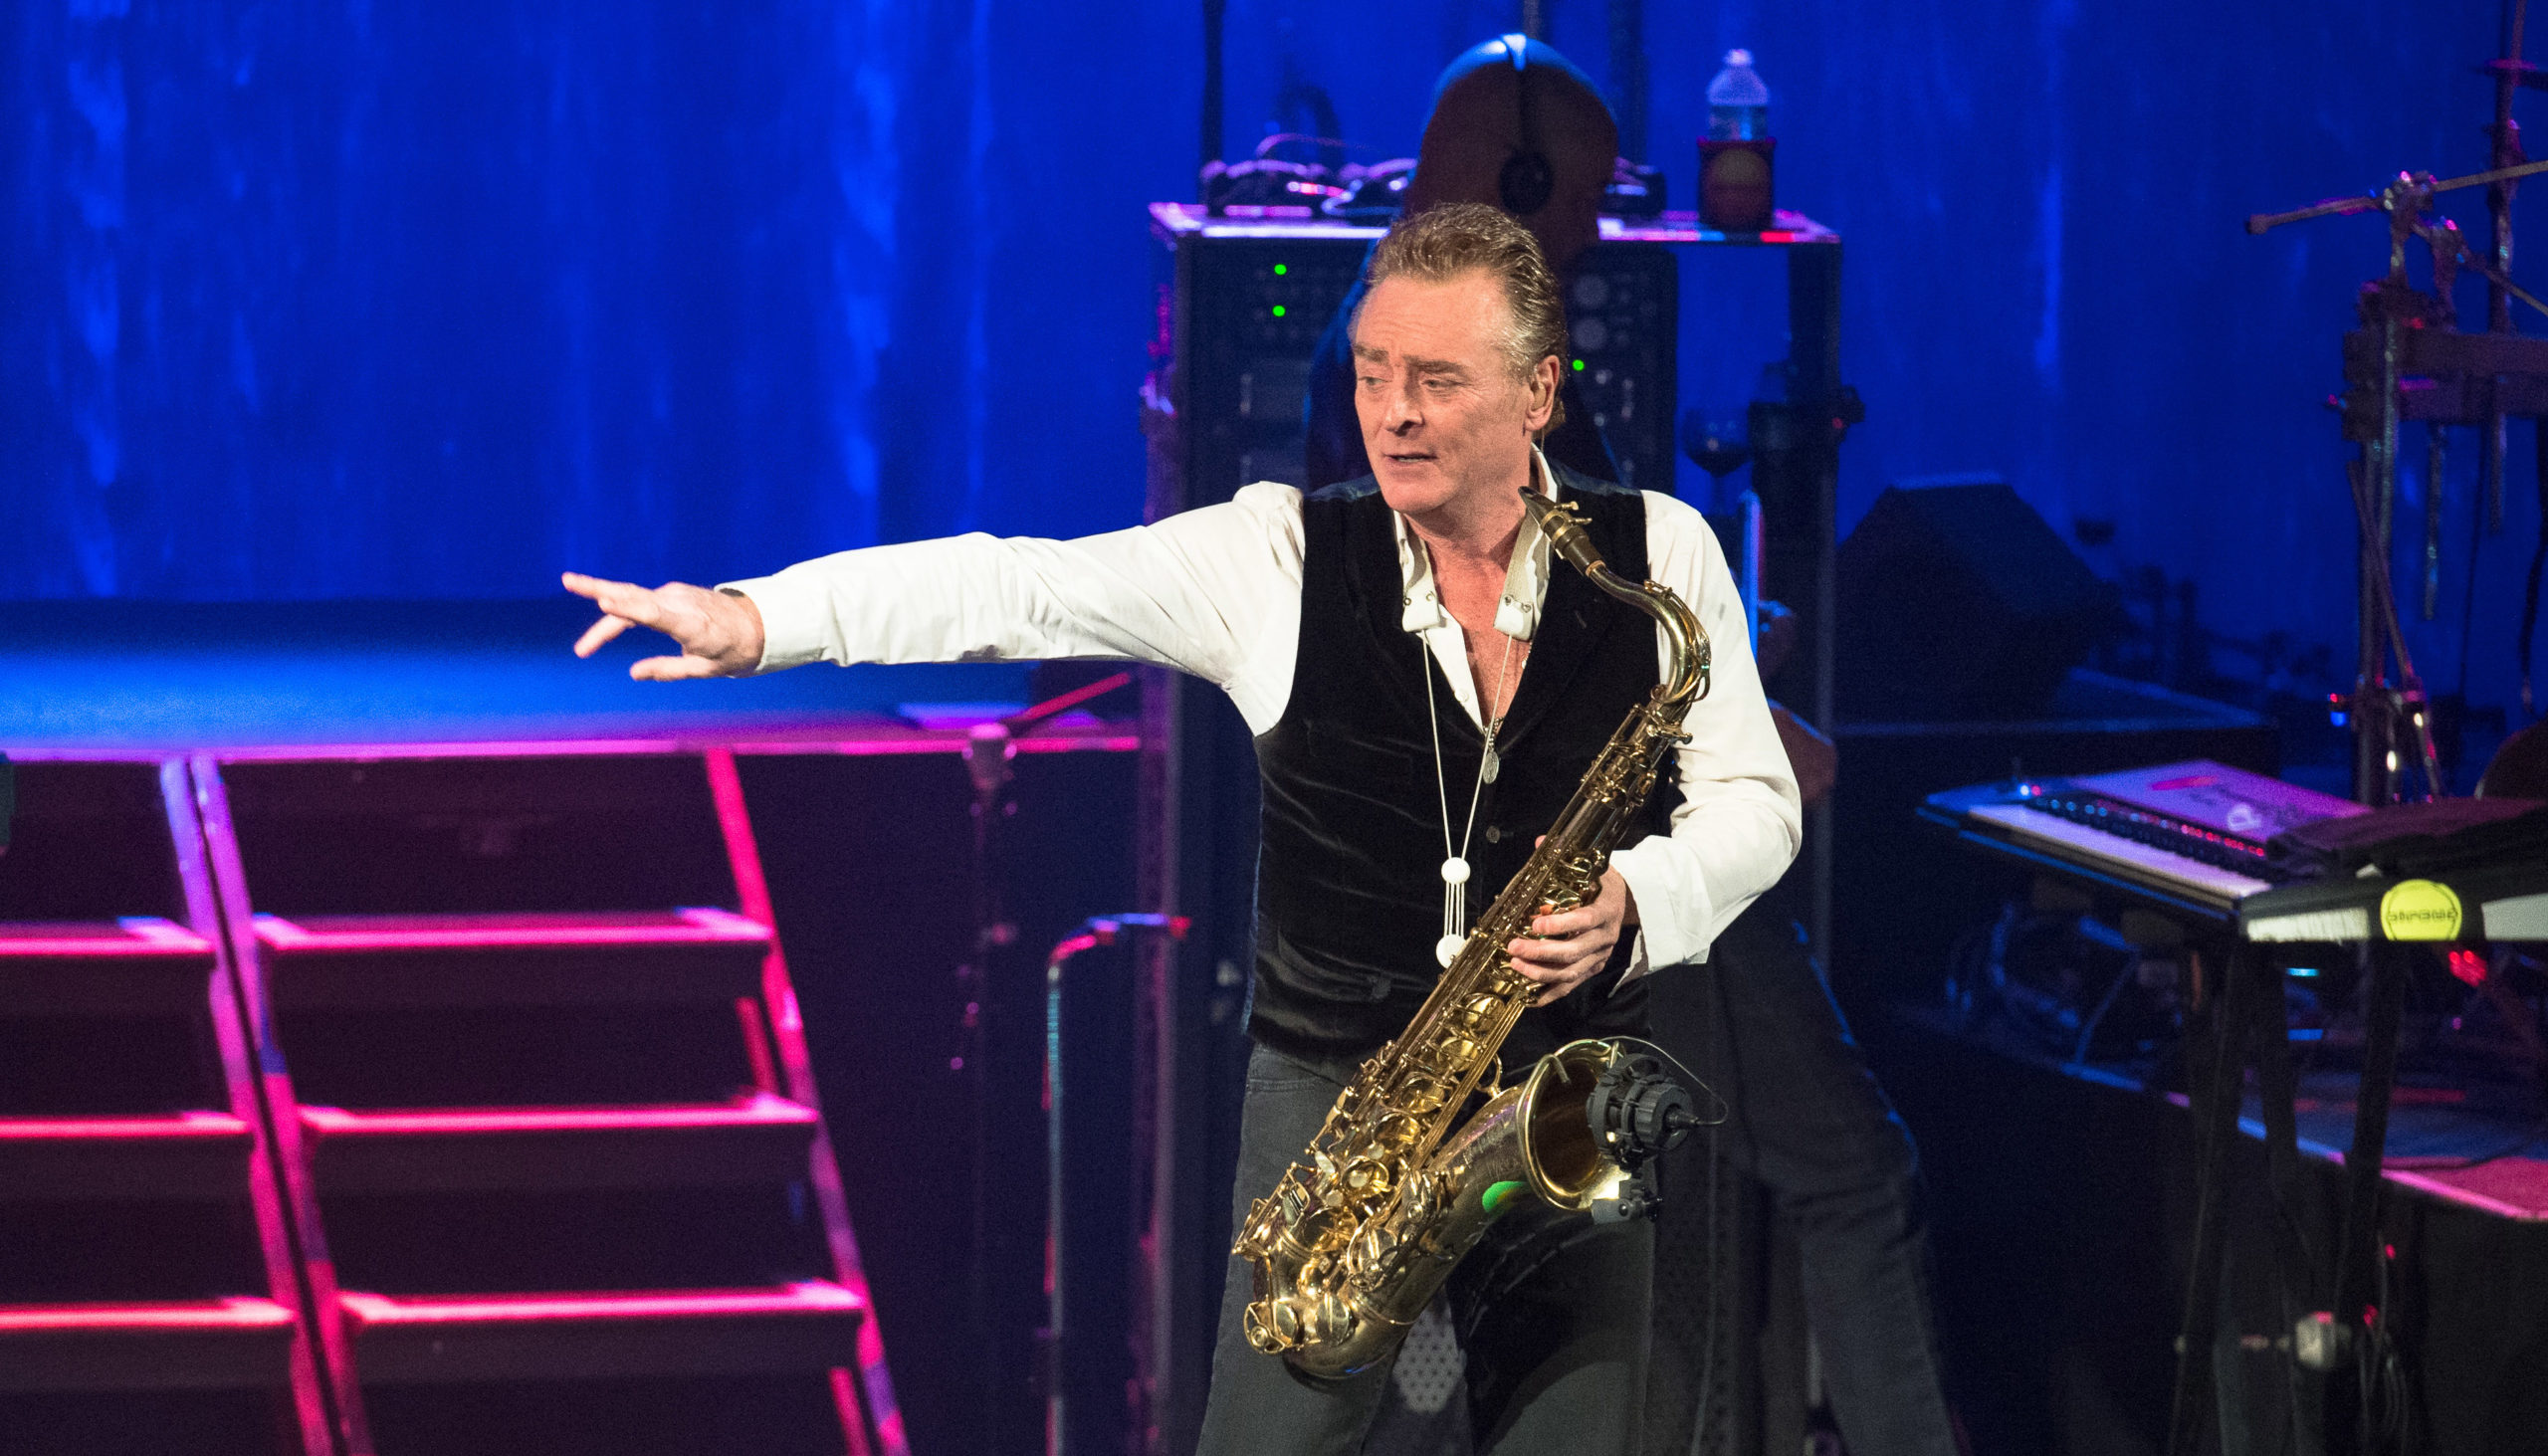 Brian Travers UB40 Performs At Le Trianon